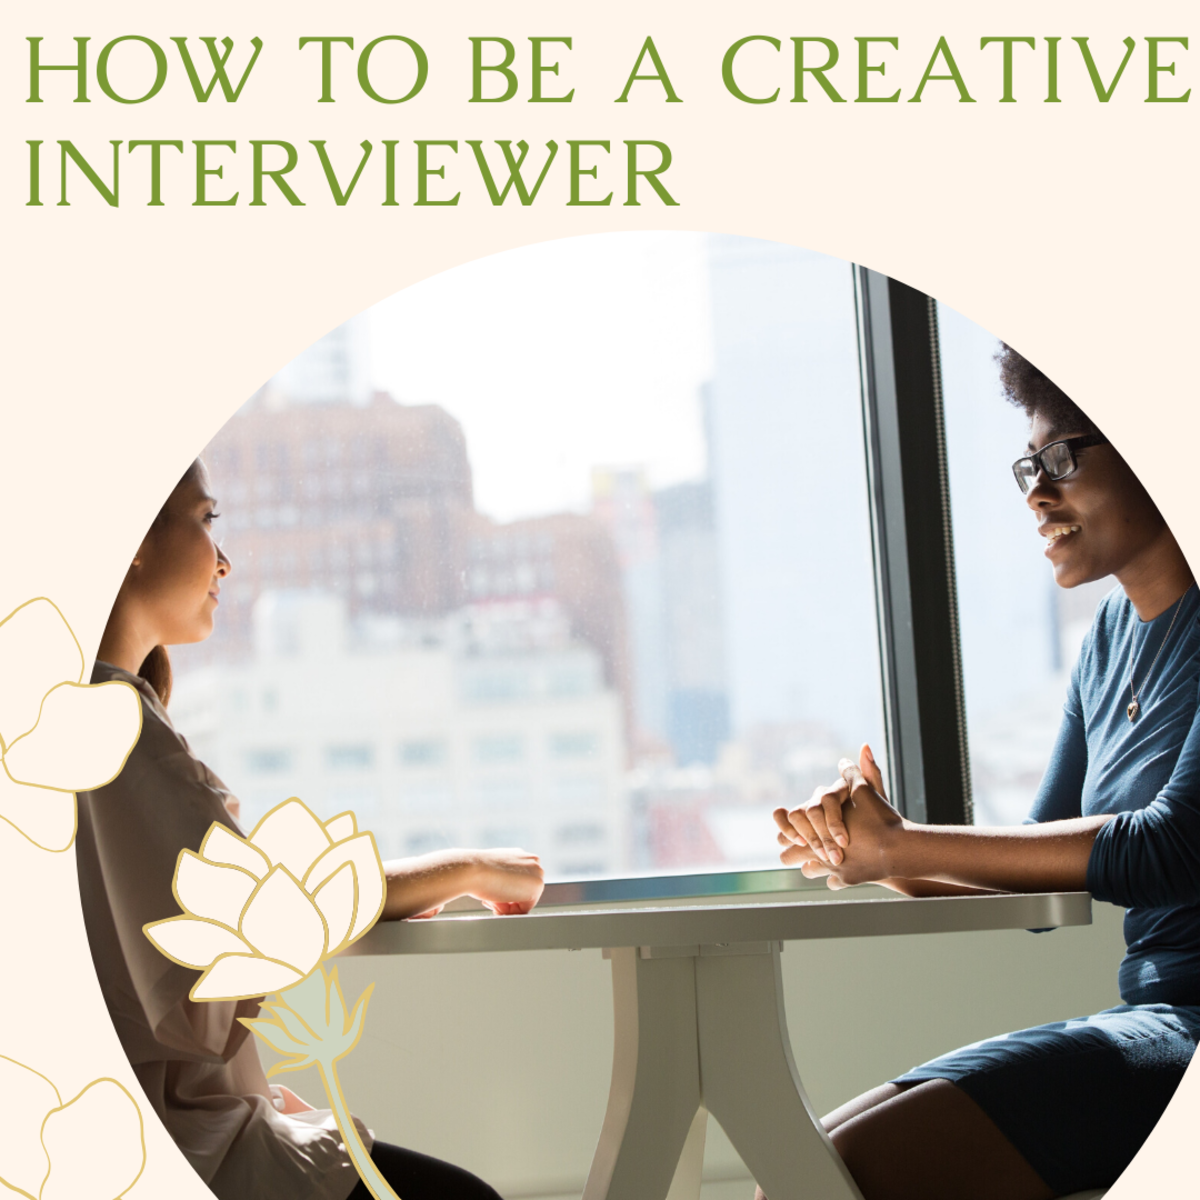 Learn techniques to be a better interviewer.